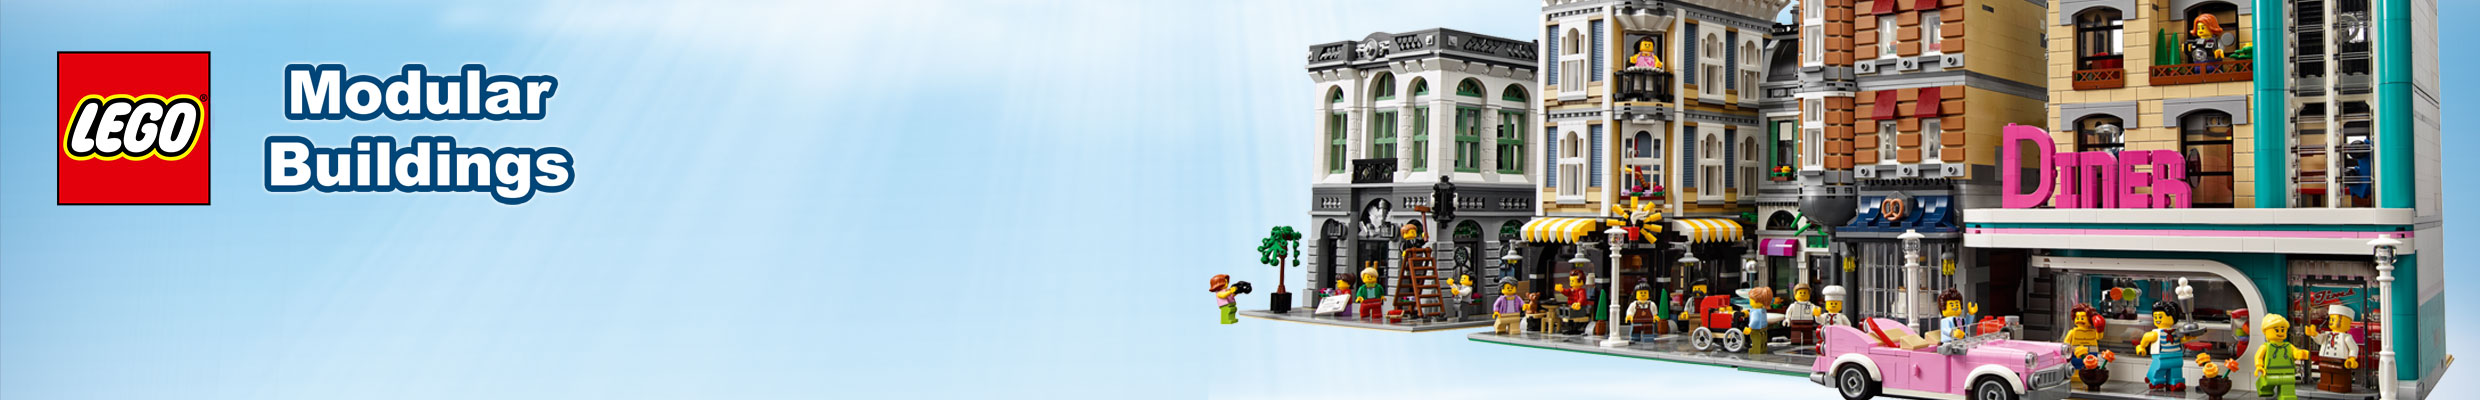 LEGO Modular Buildings